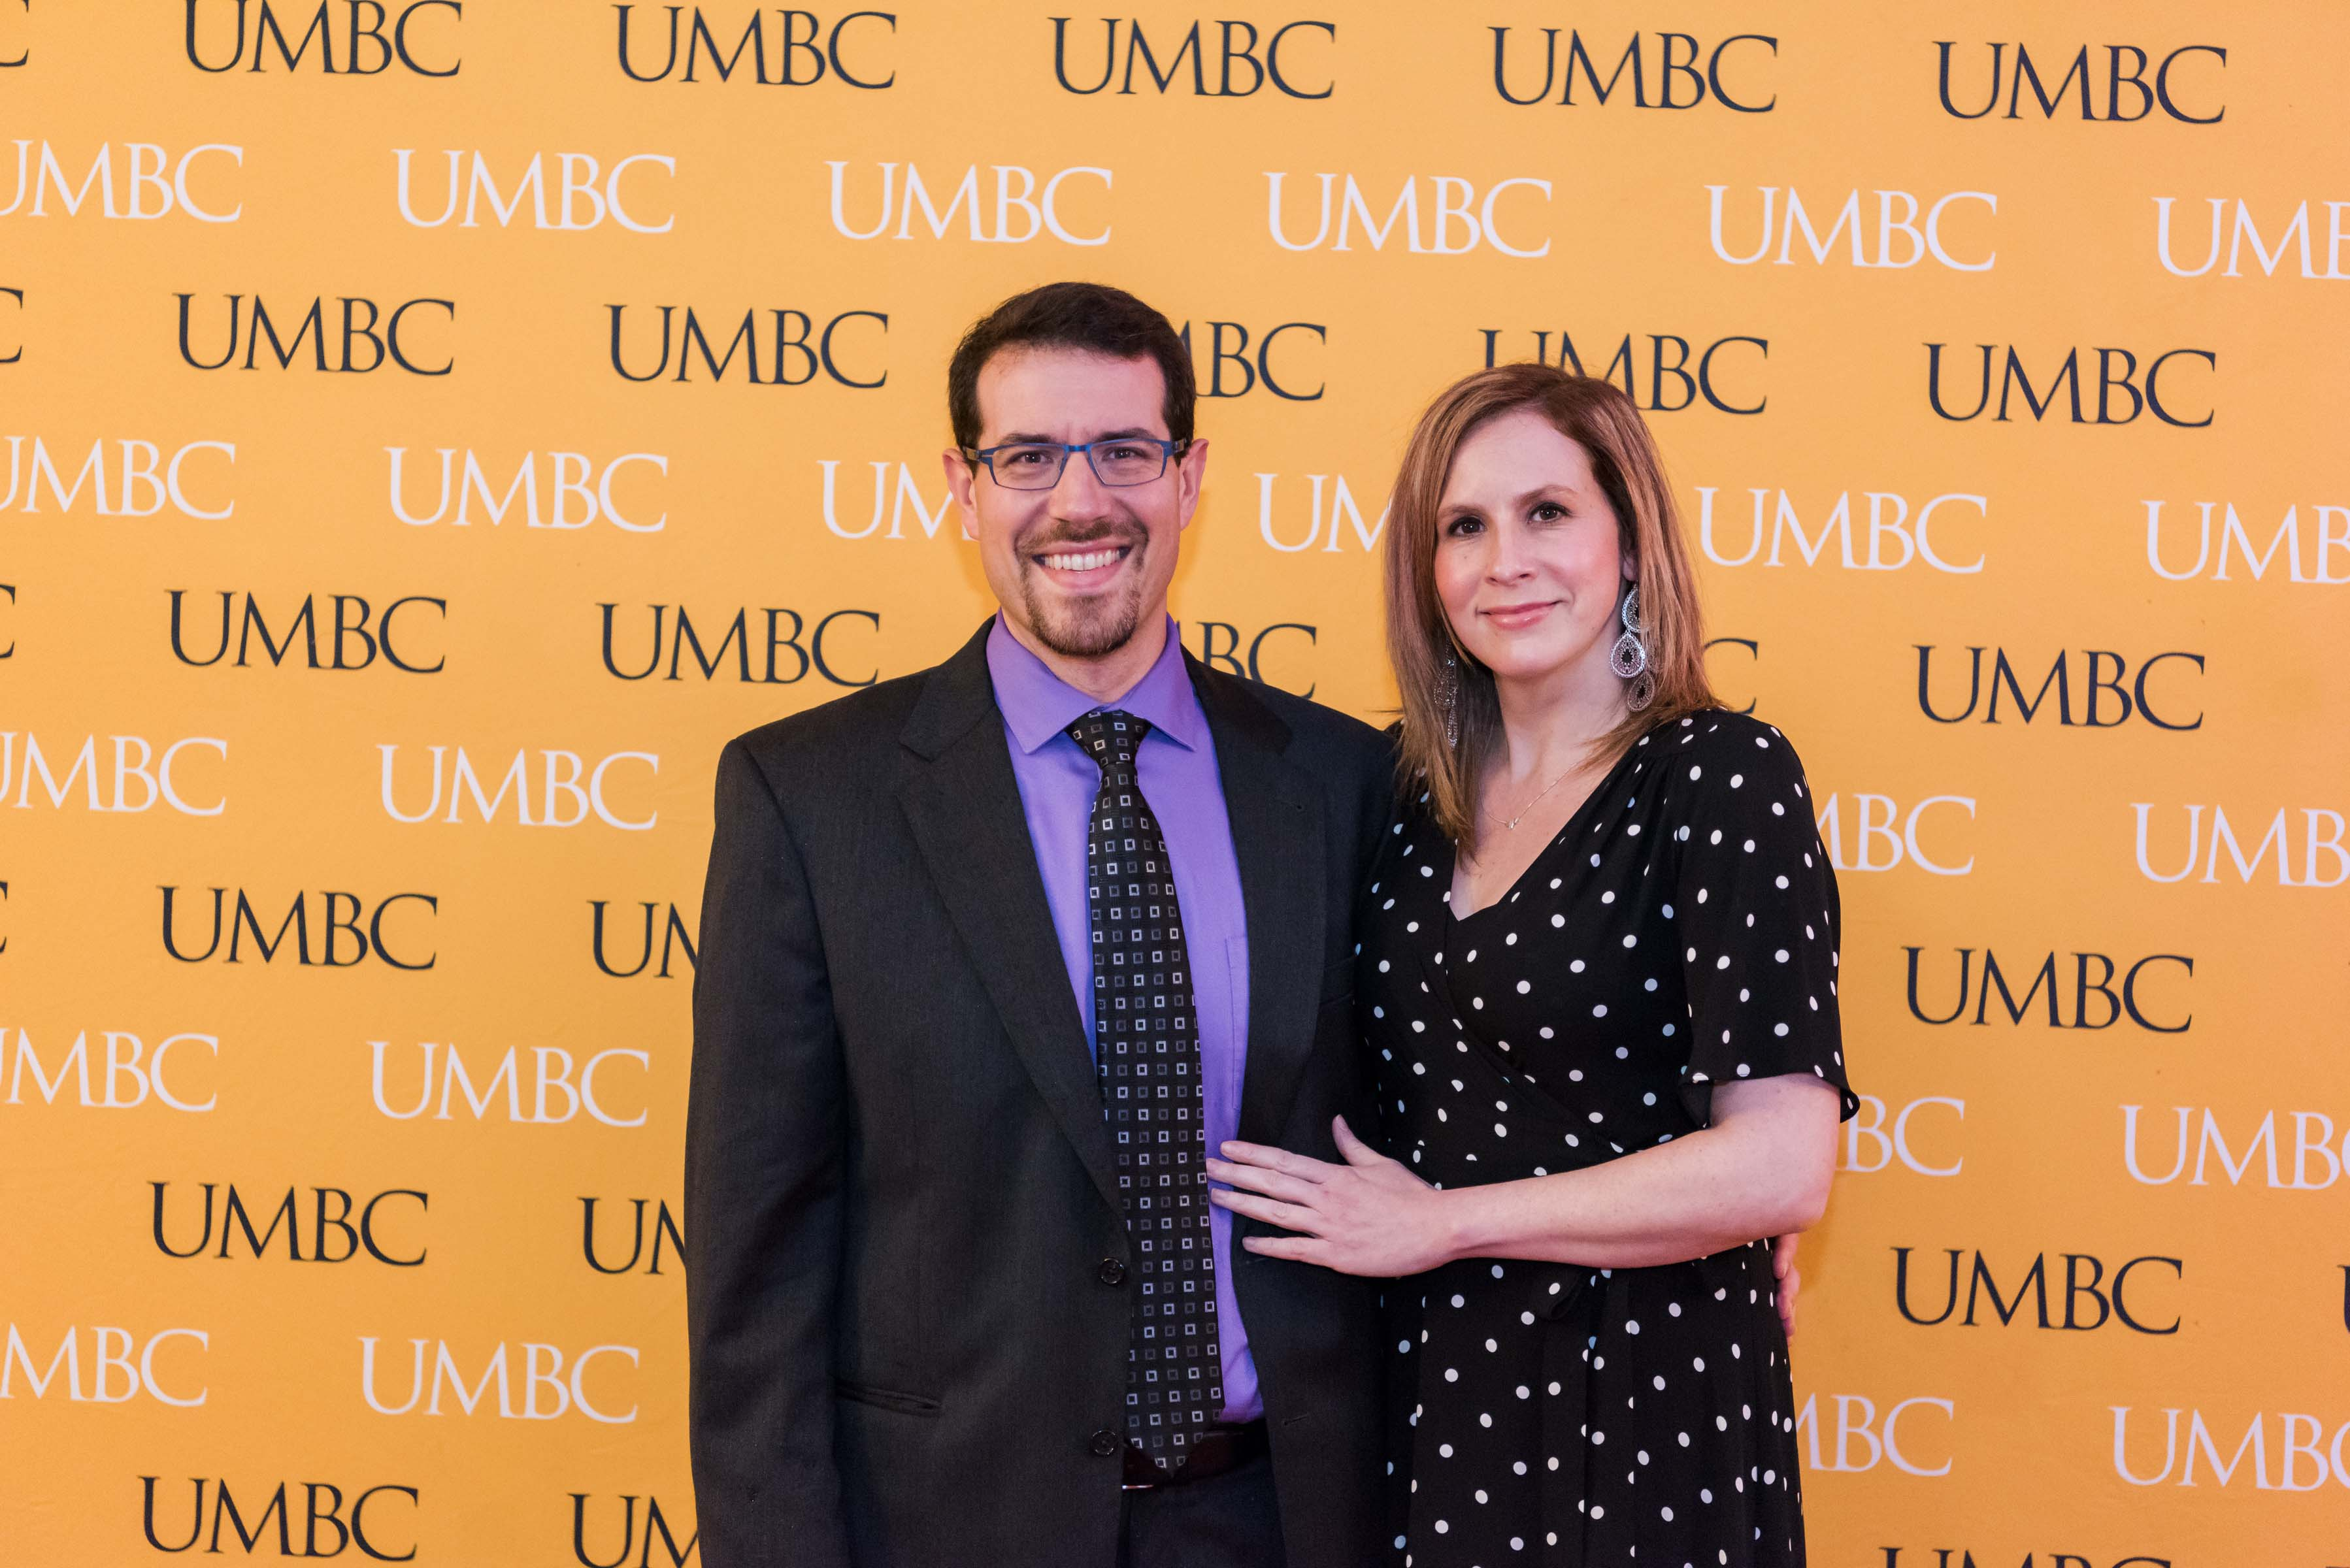 Man and woman pose together with UMBC wall for wine tasting